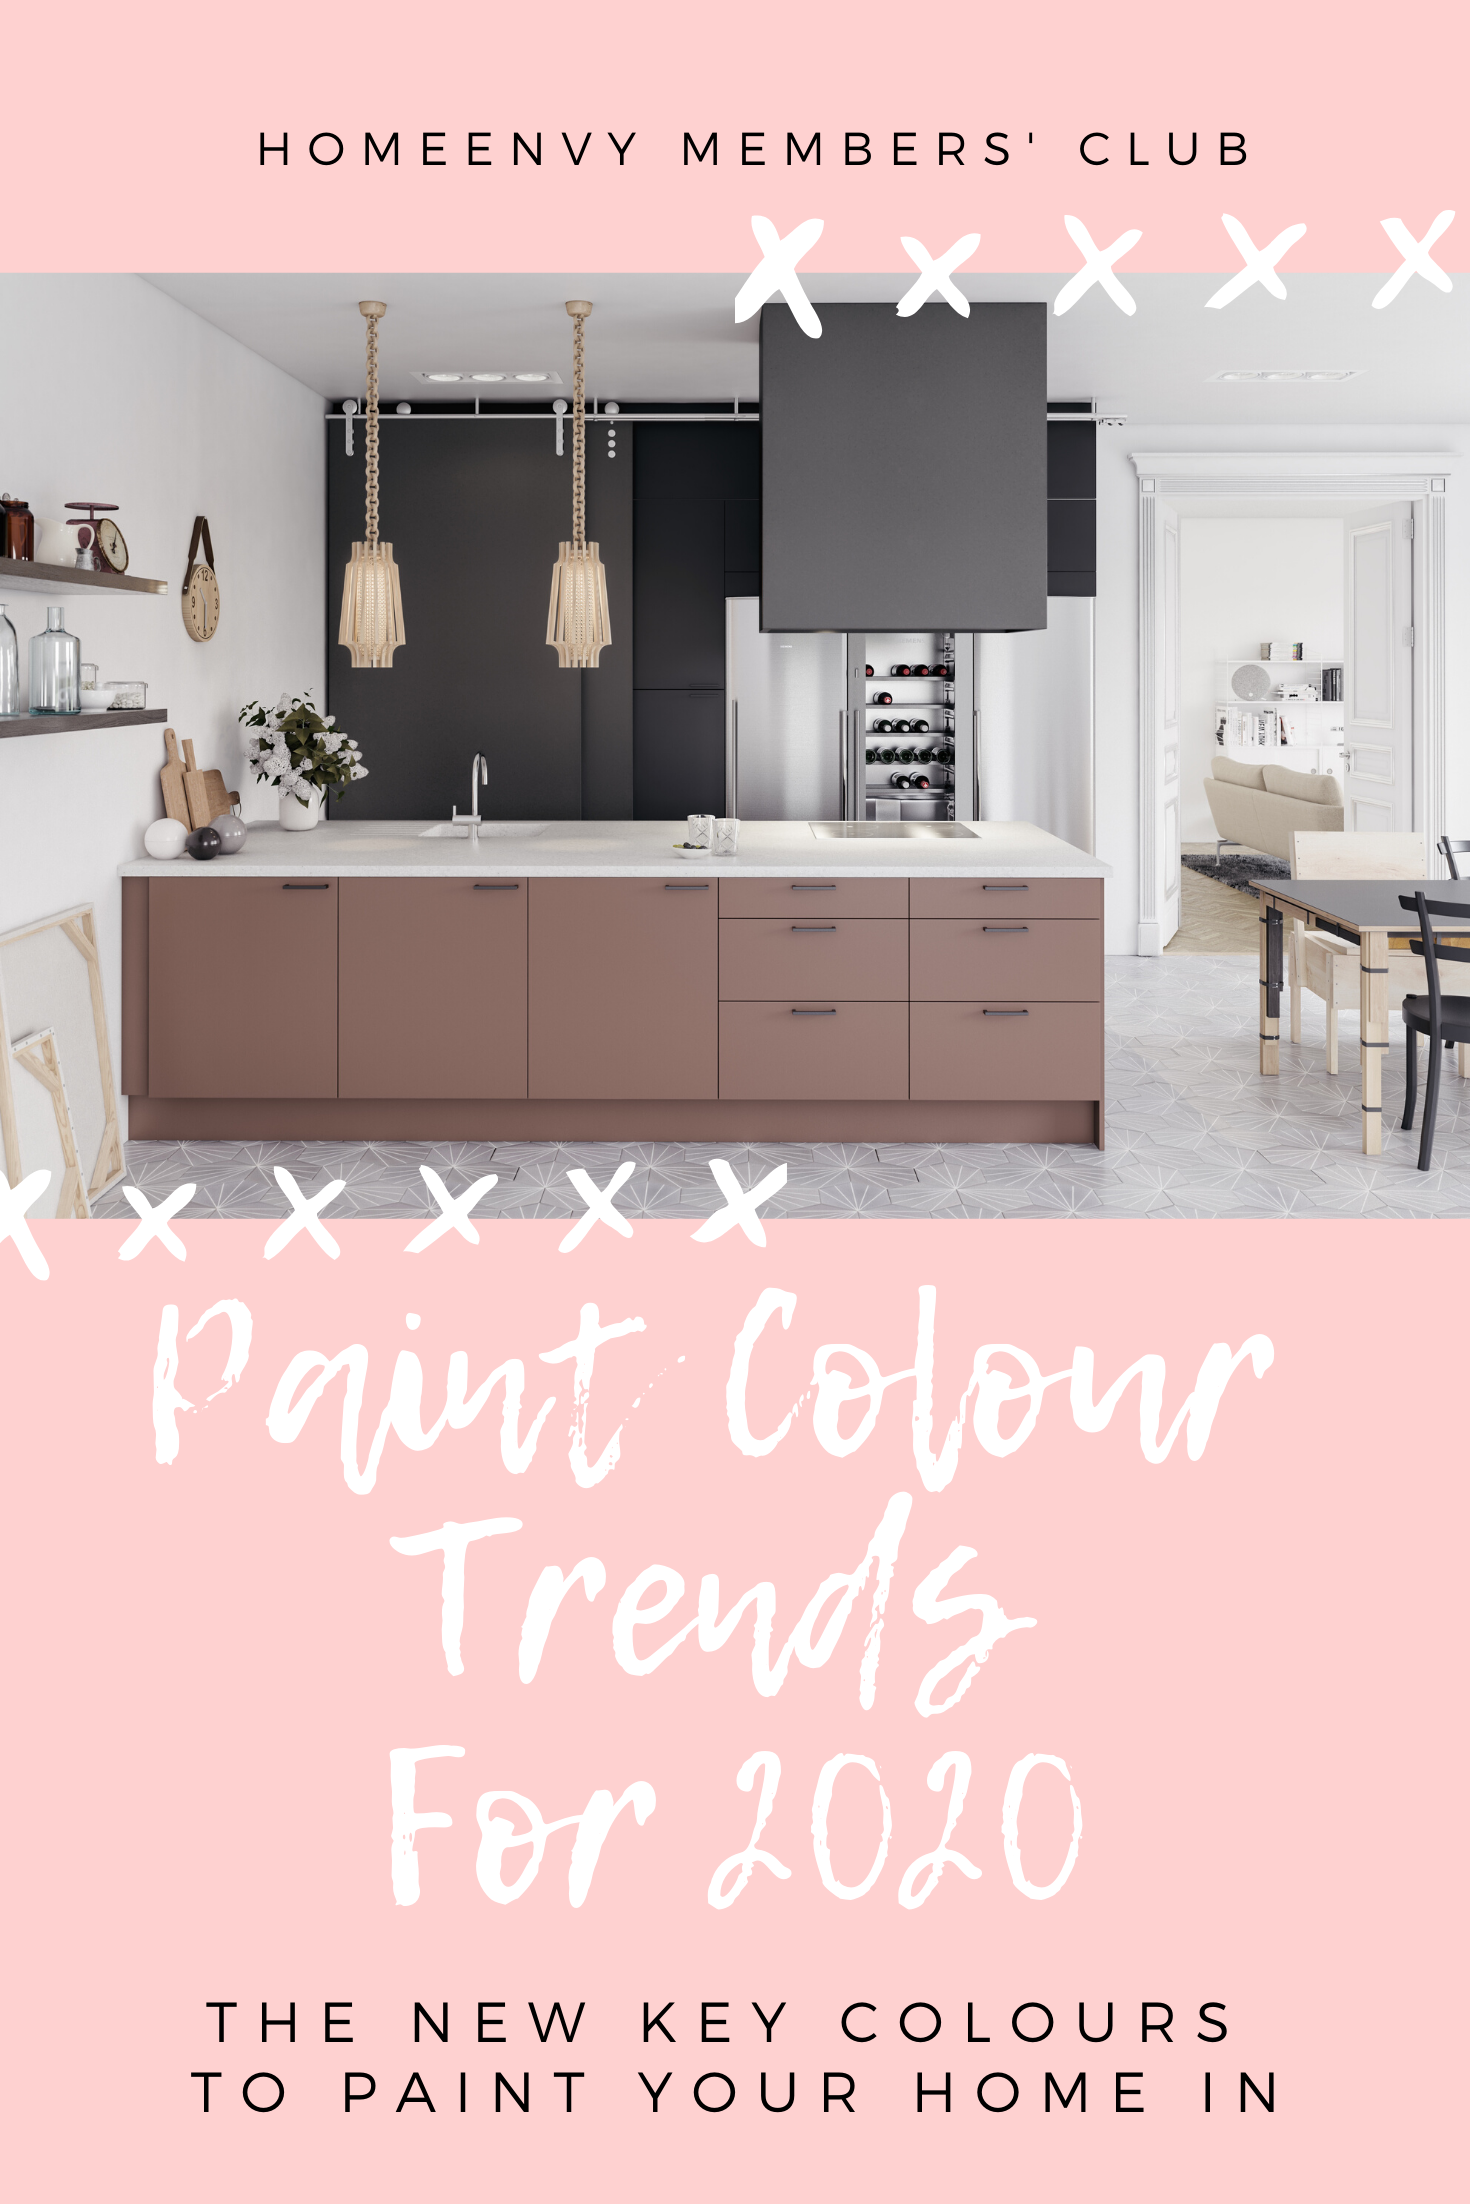 Paint Colour Trends 2020 The New Key Colours To Paint Your Home In